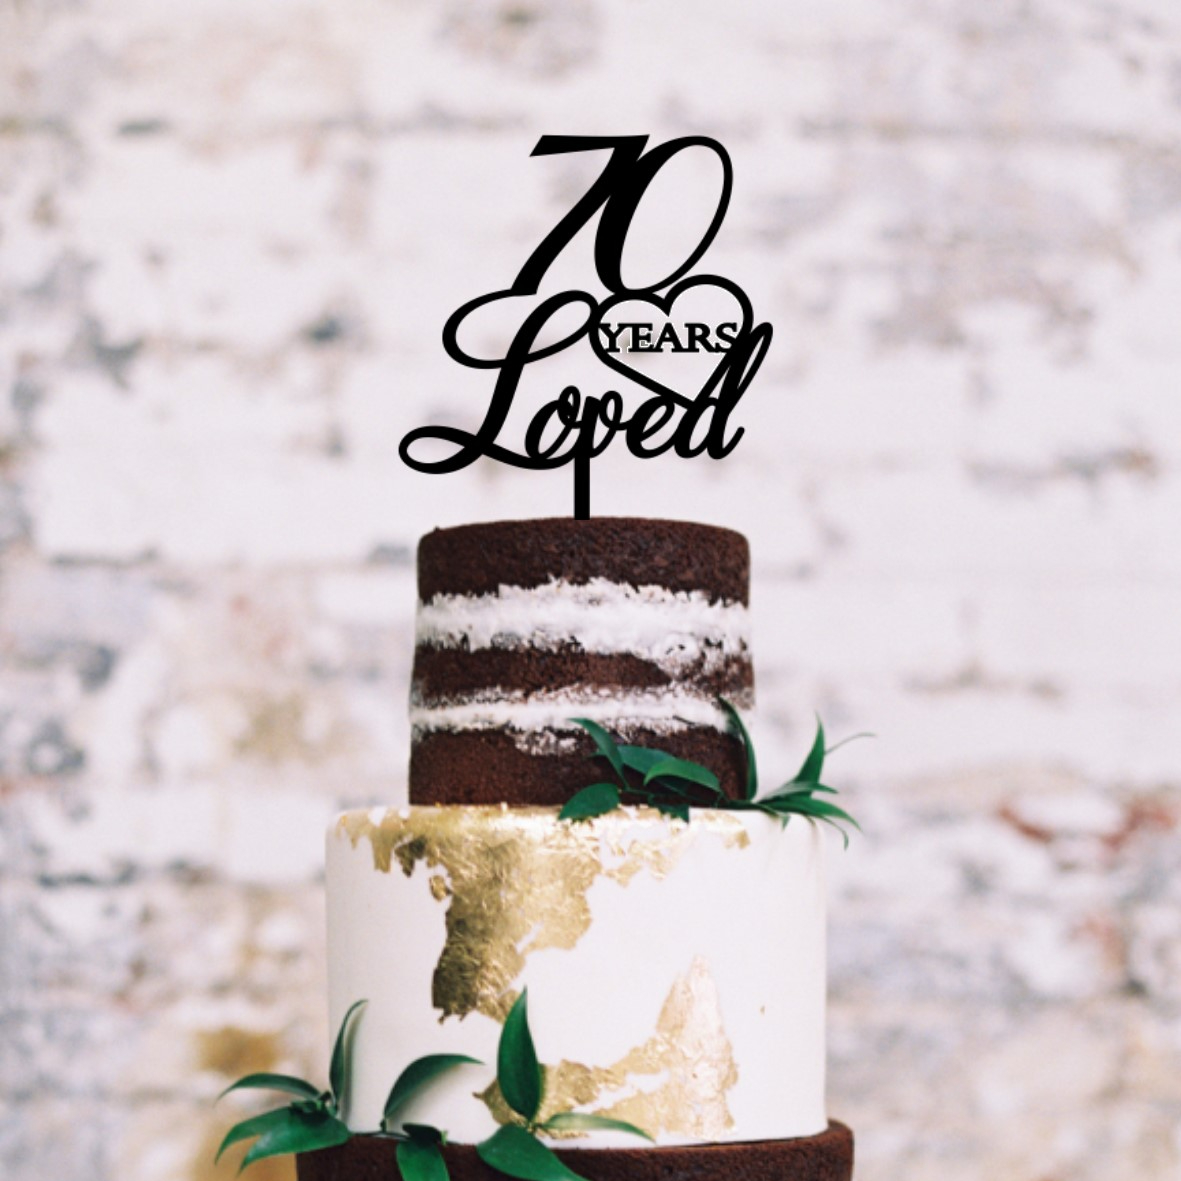 Quick Creations Cake Topper - 70 Years Loved